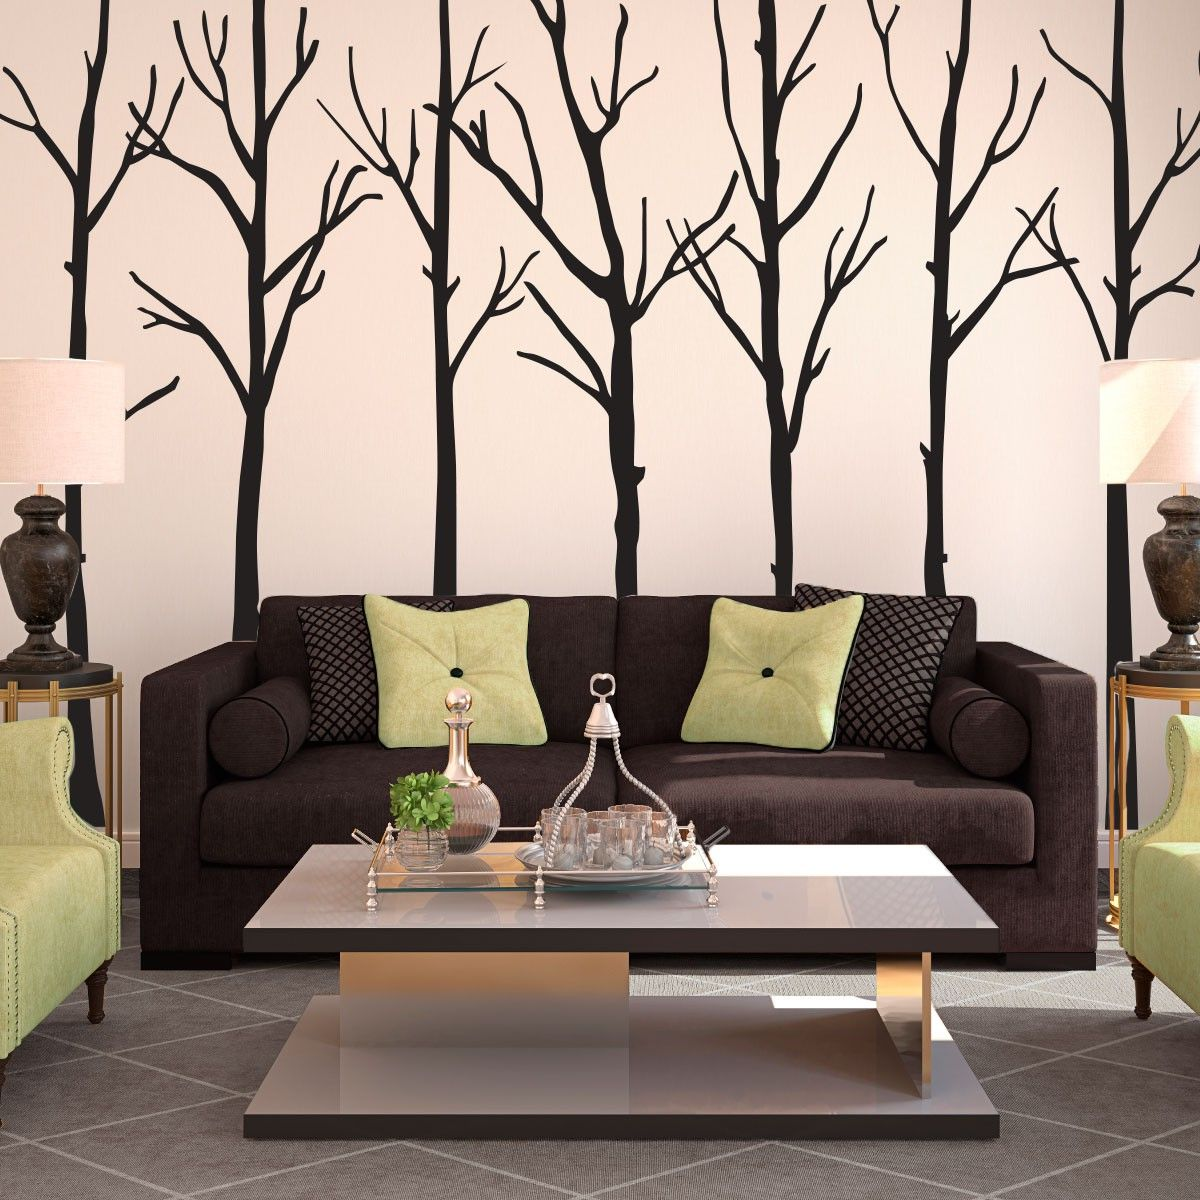 Modern And Peacefull Wall Art For Living Room